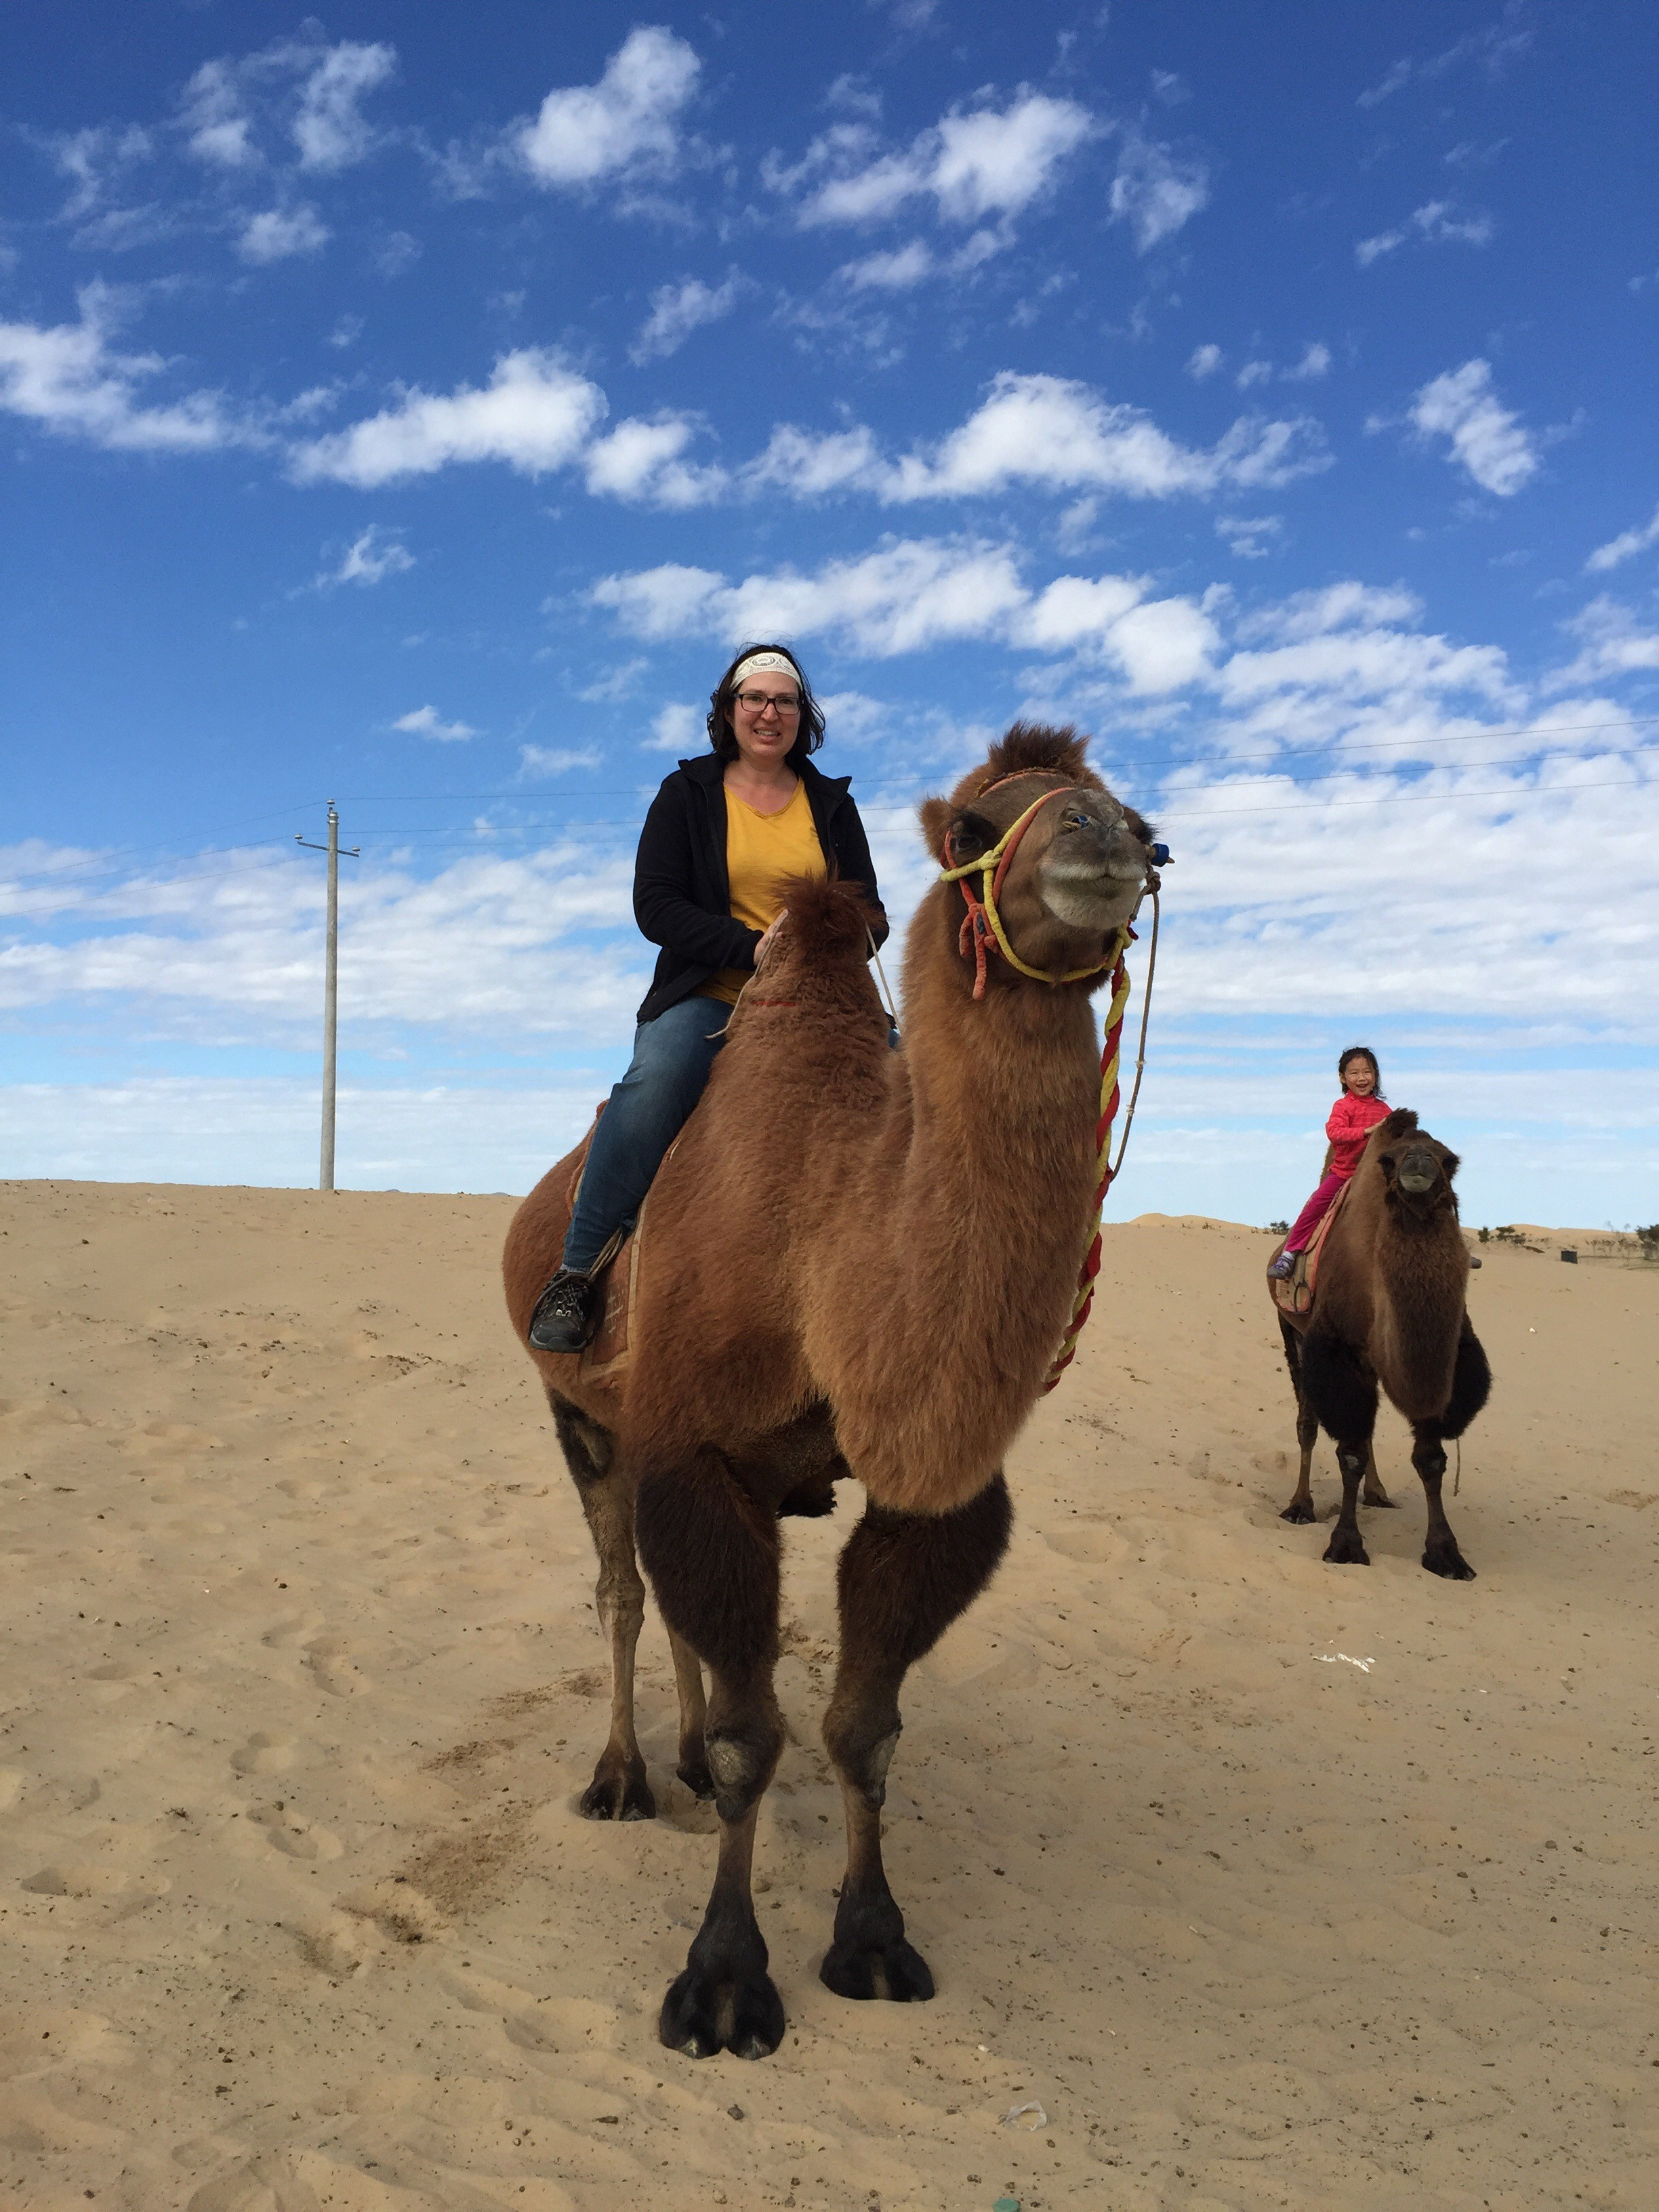 Seriously, I'm on a camel!!